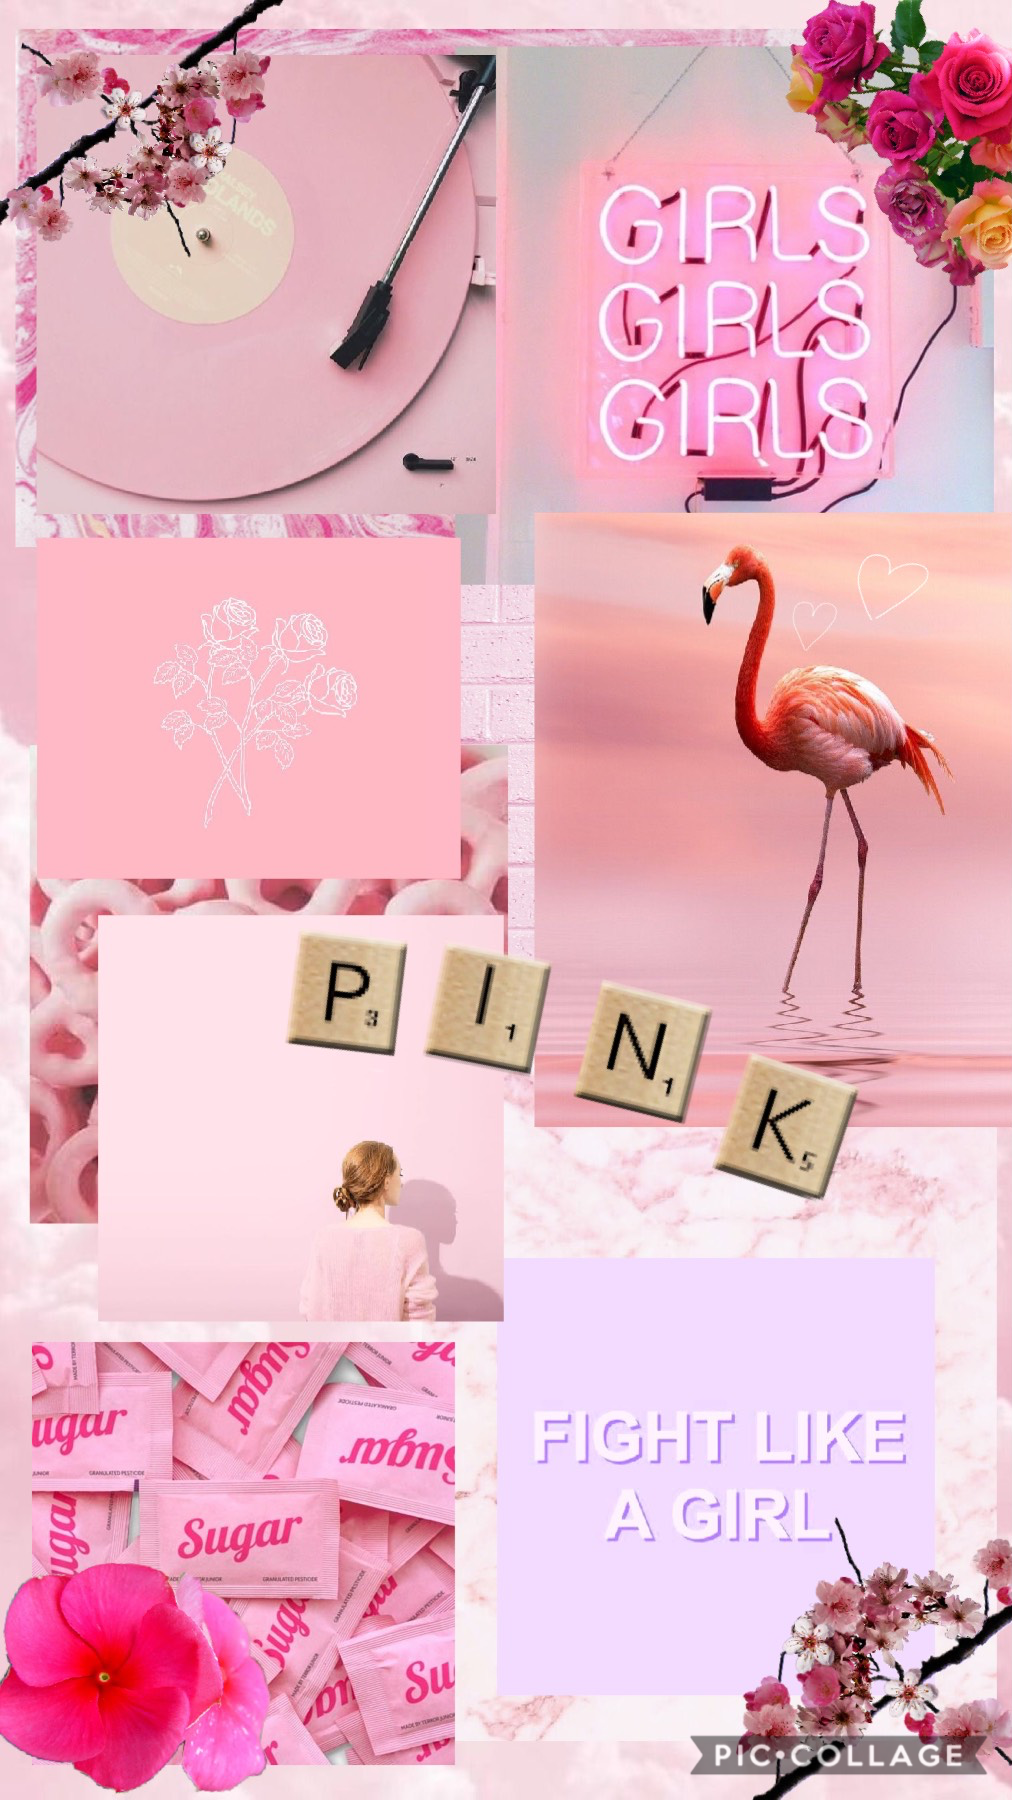 🌸 pink🌸 That's the end of the rainbow theme☹️ I'll do regular collages until I come up with another theme to do